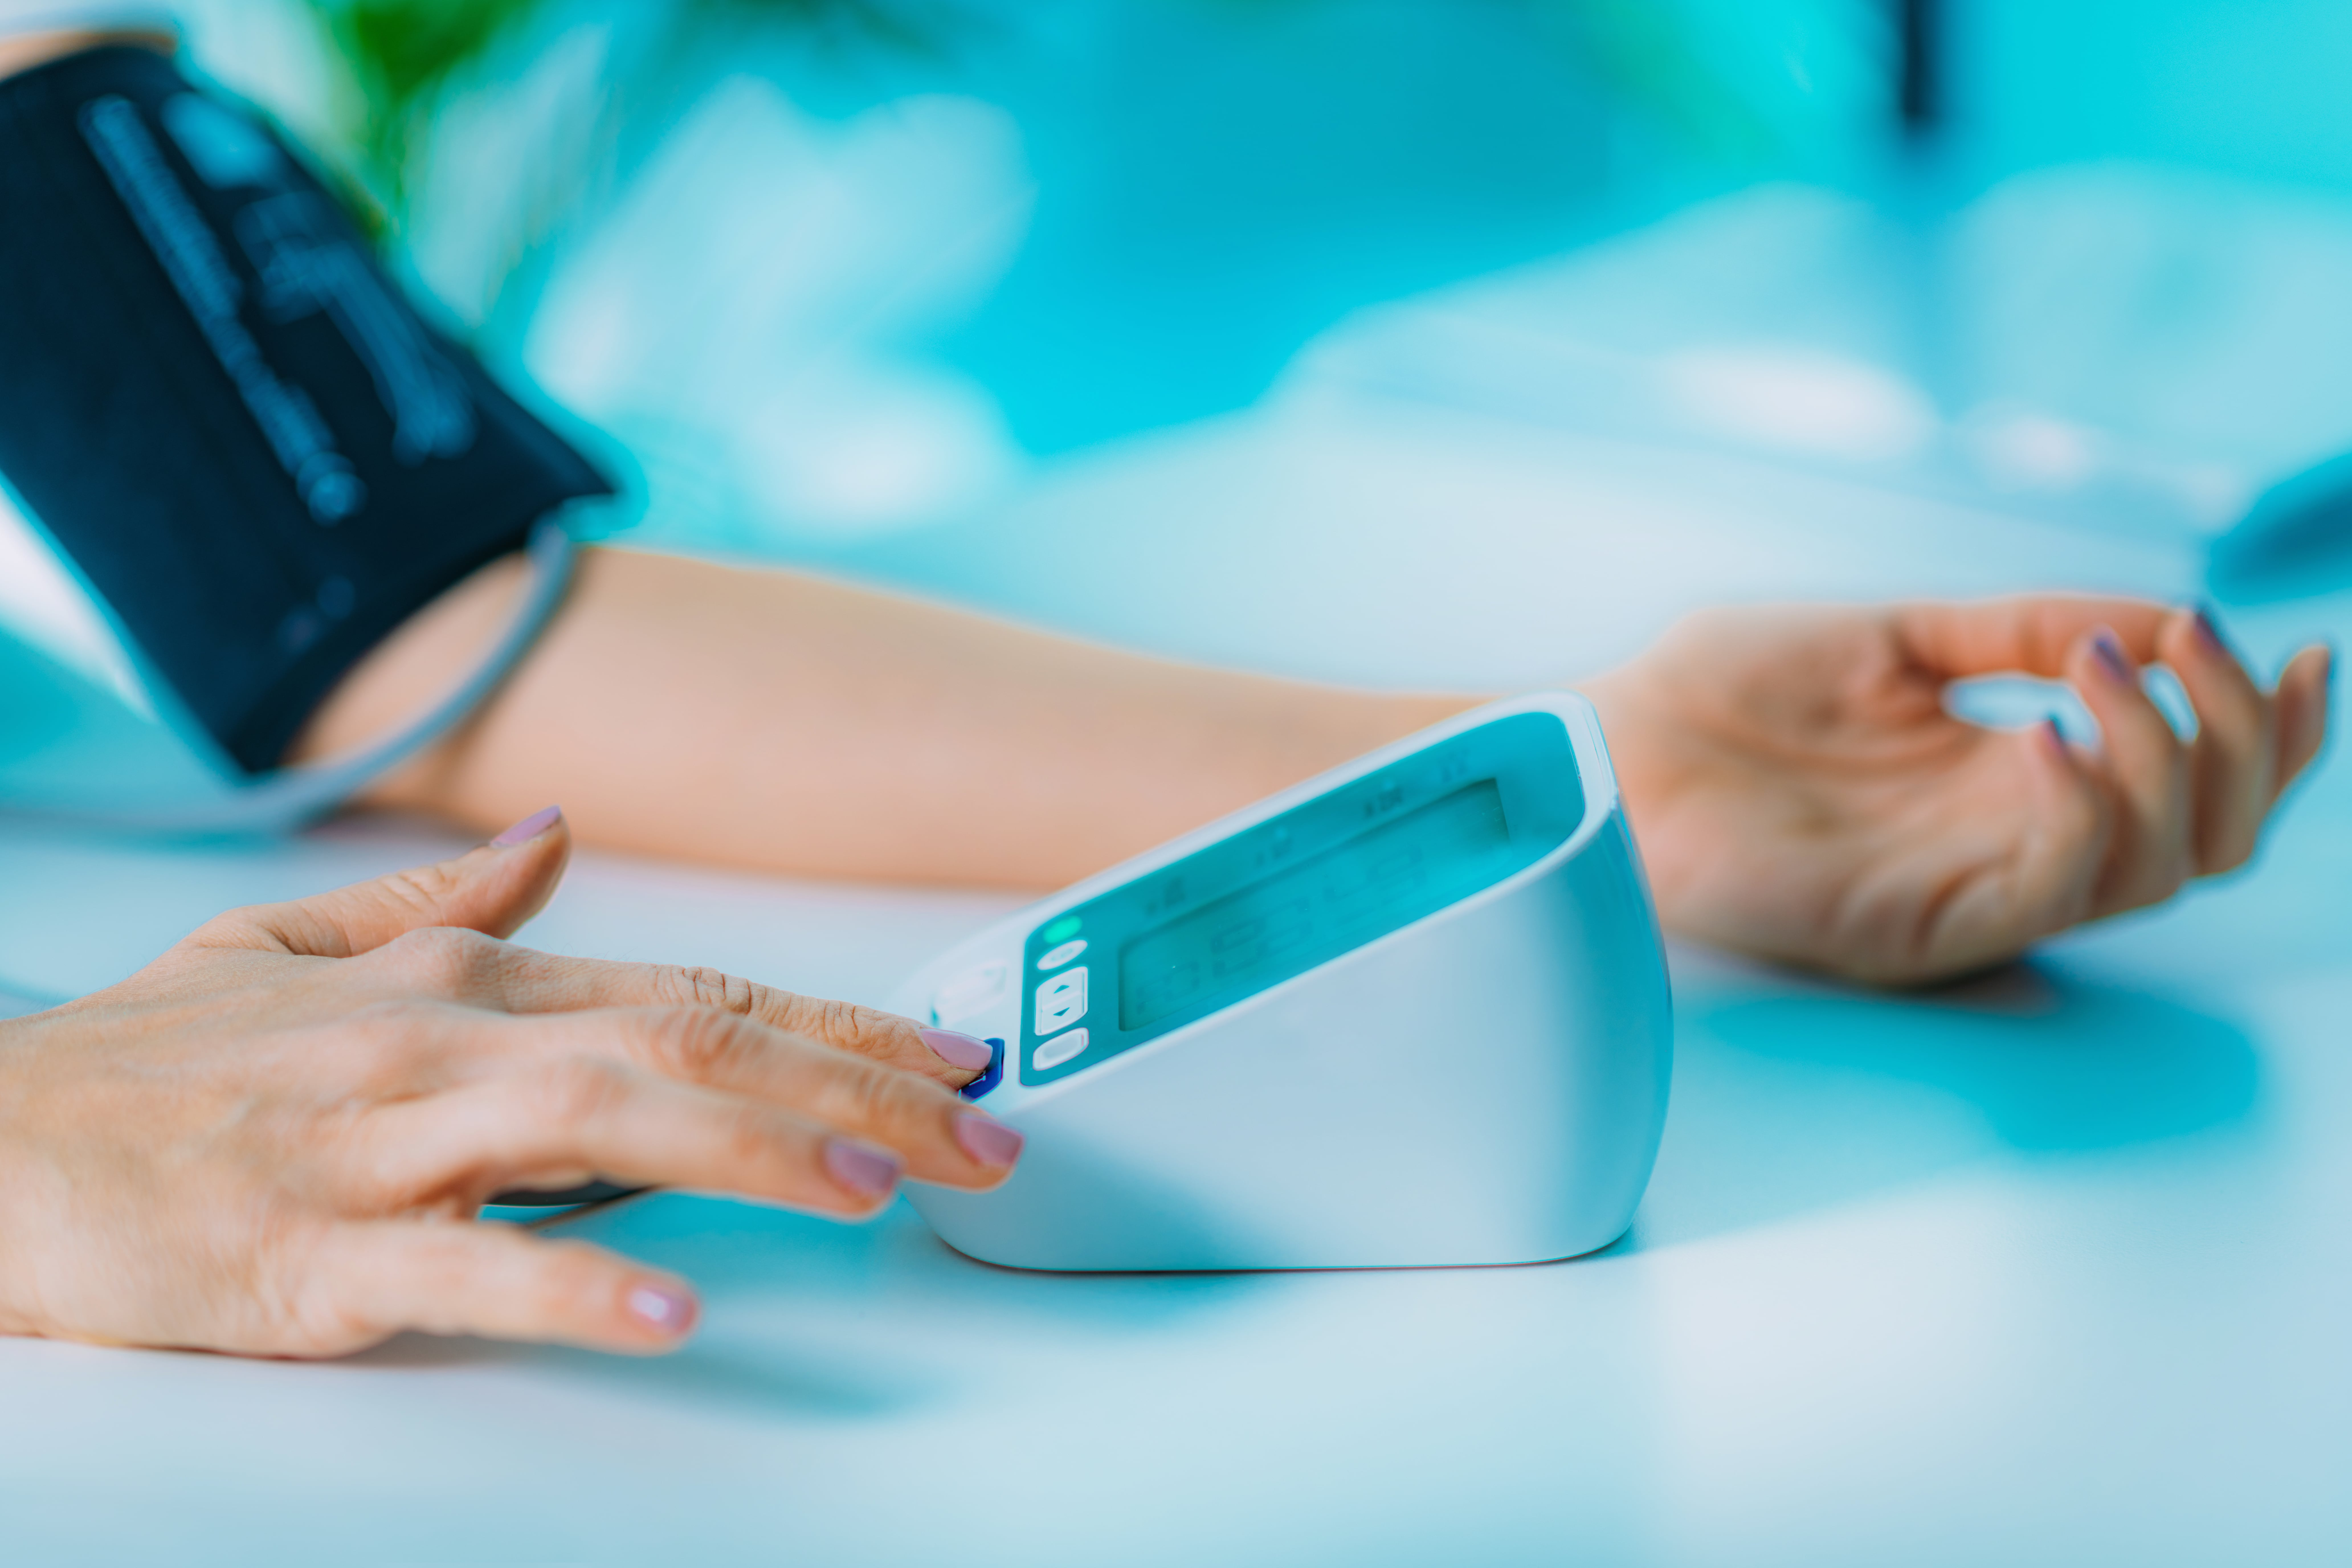 How accurate are home blood pressure monitors for remote patient monitoring?